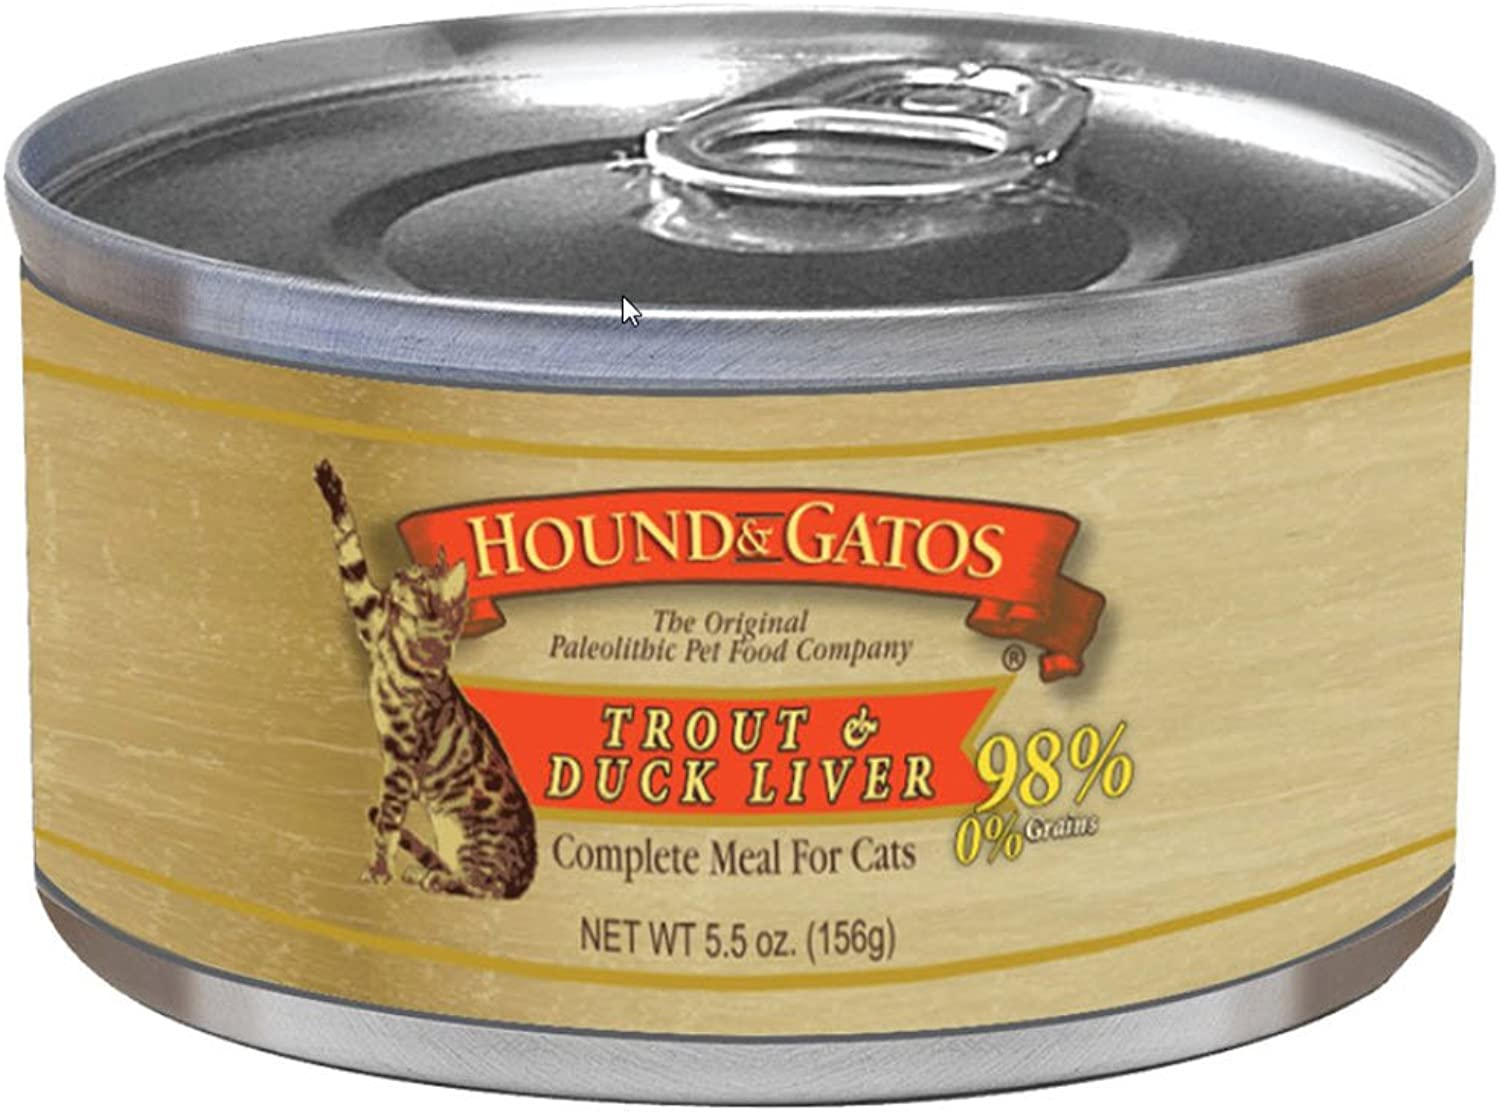 Hound & Gatos Trout and Duck Liver Canned Cat Food 5.5 oz  24 can case